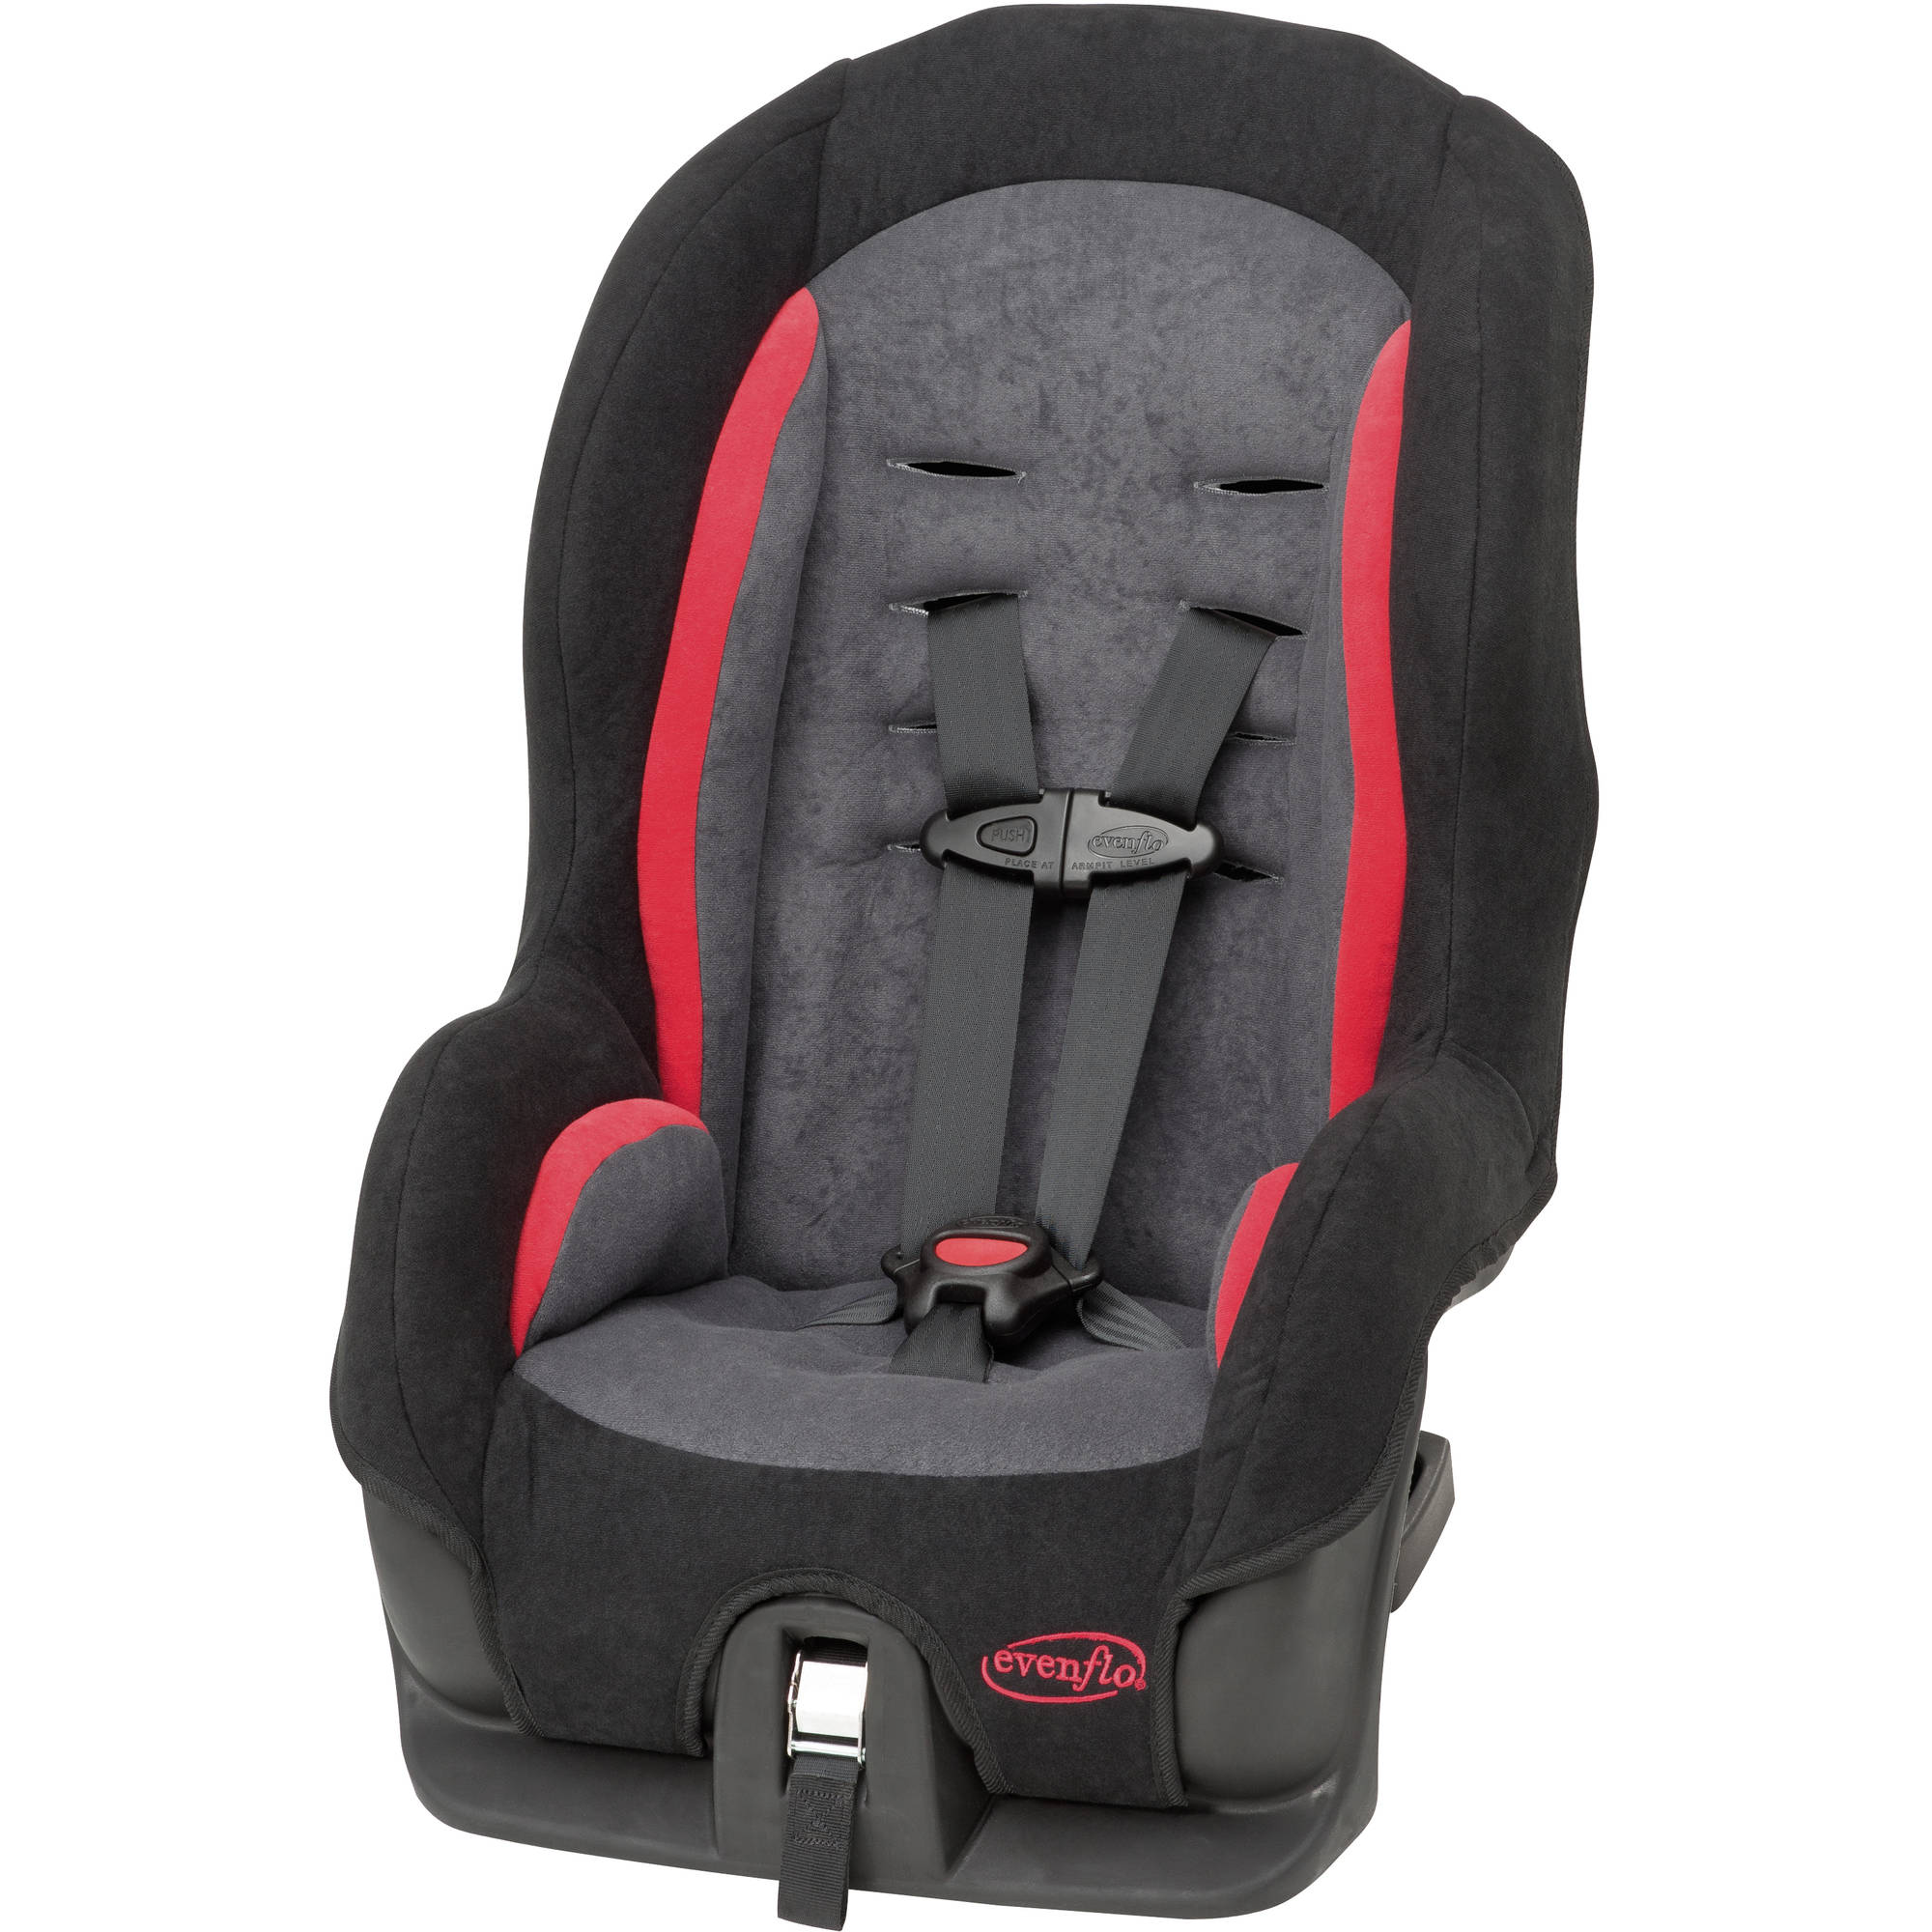 Evenflo Tribute Sport Convertible Car Seat, Choose Your Color